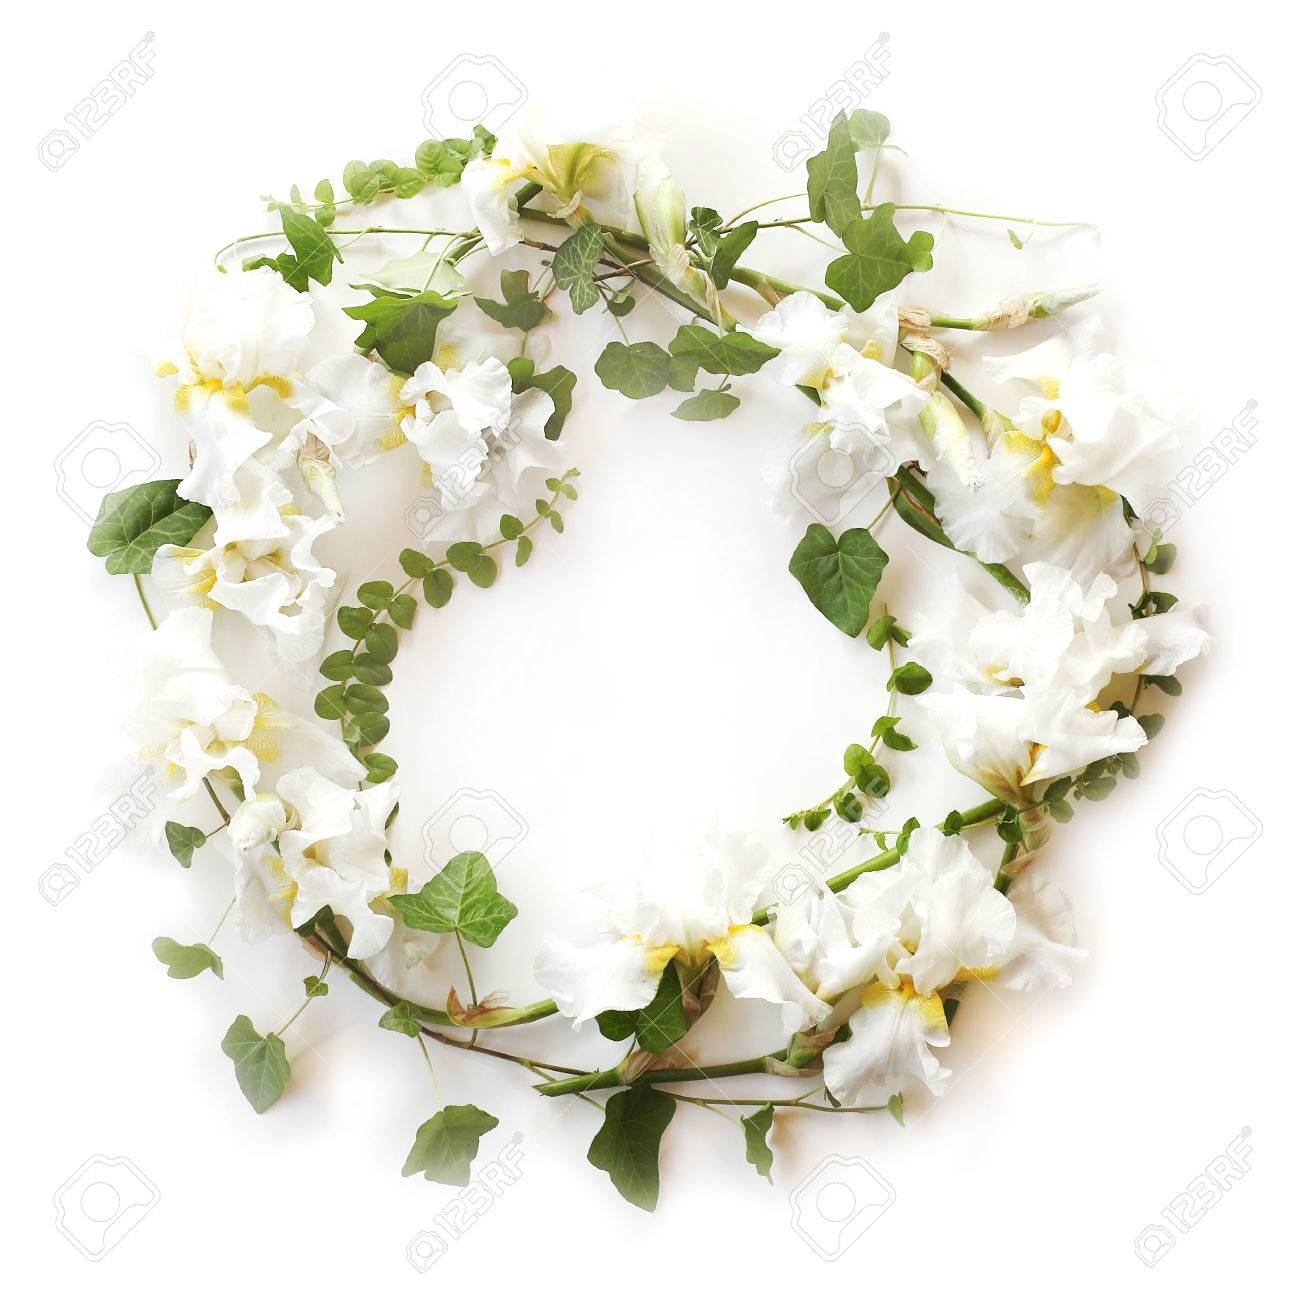 Round Floral Frame Made Of Fresh Iris White Flowers And Ivy Hedera